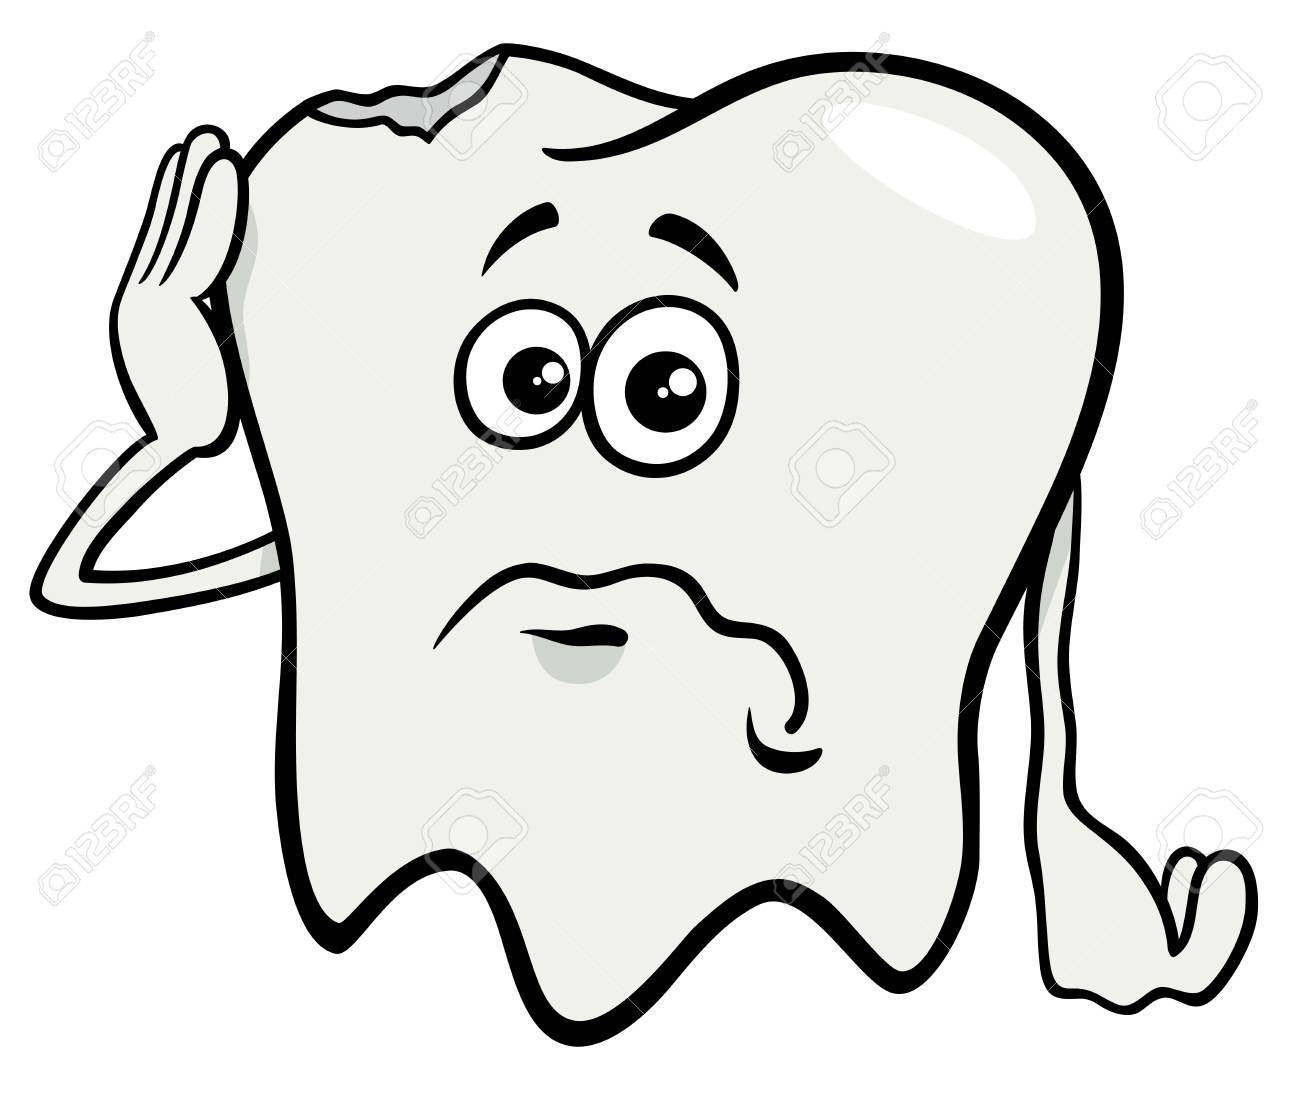 Cartoon Illustration Of Sad Tooth Character With Cavity Royalty Free